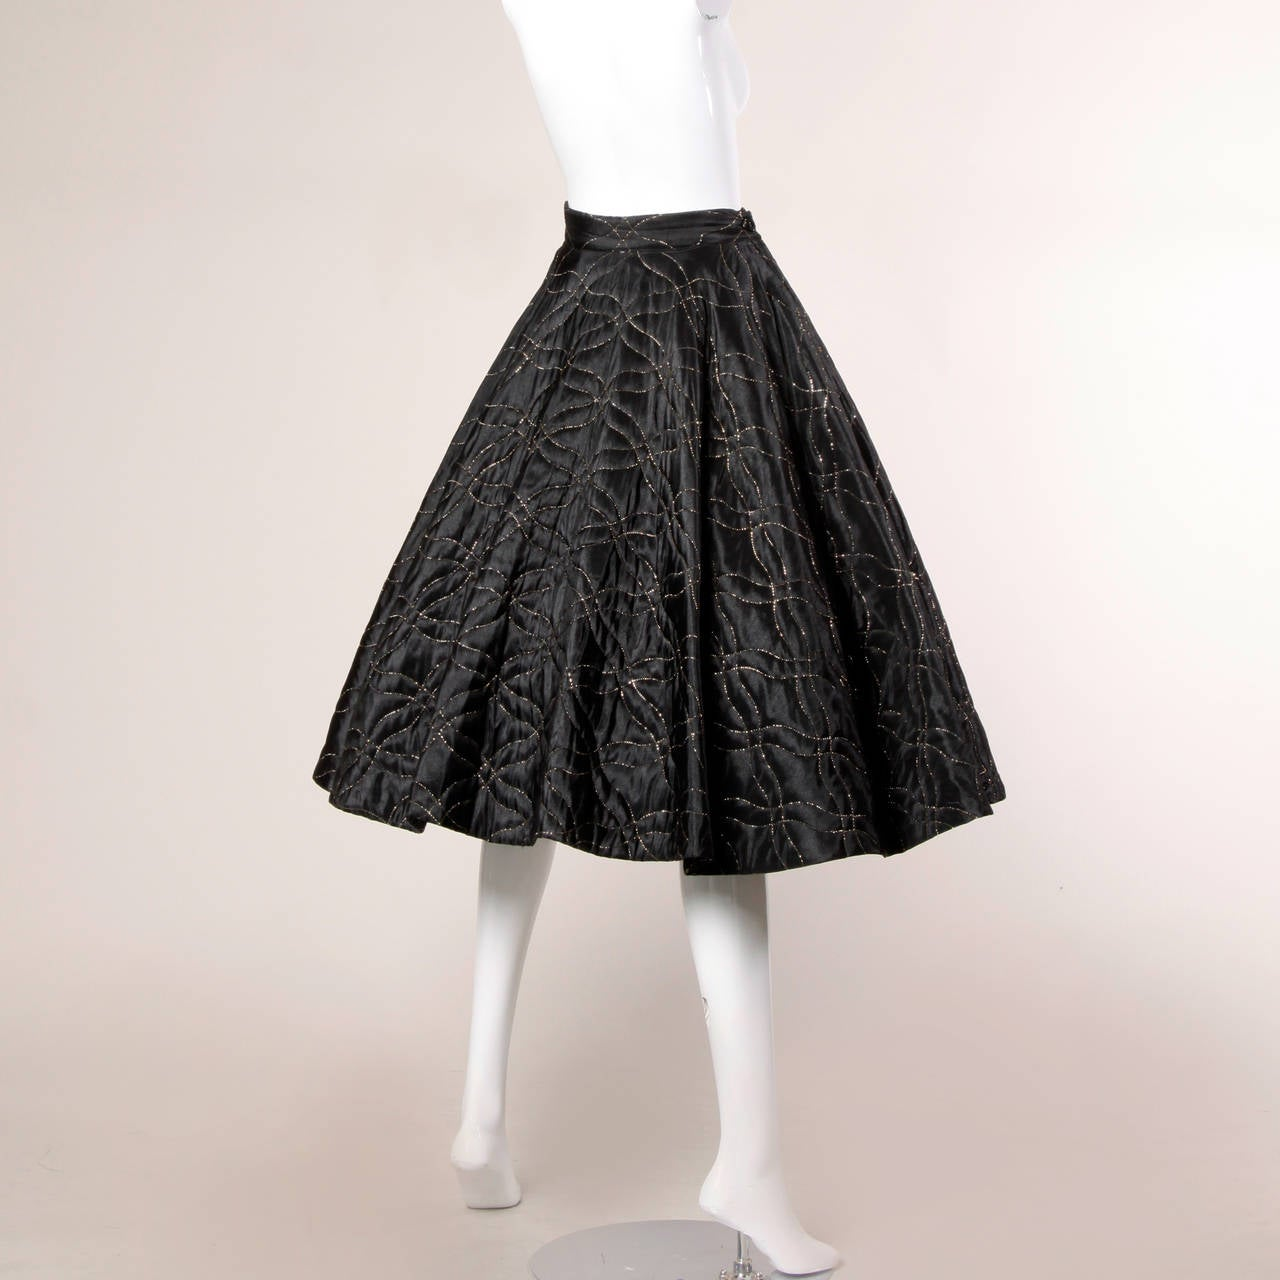 1950s Vintage Metallic Gold Quilted Circle Skirt with a Full Sweep 4